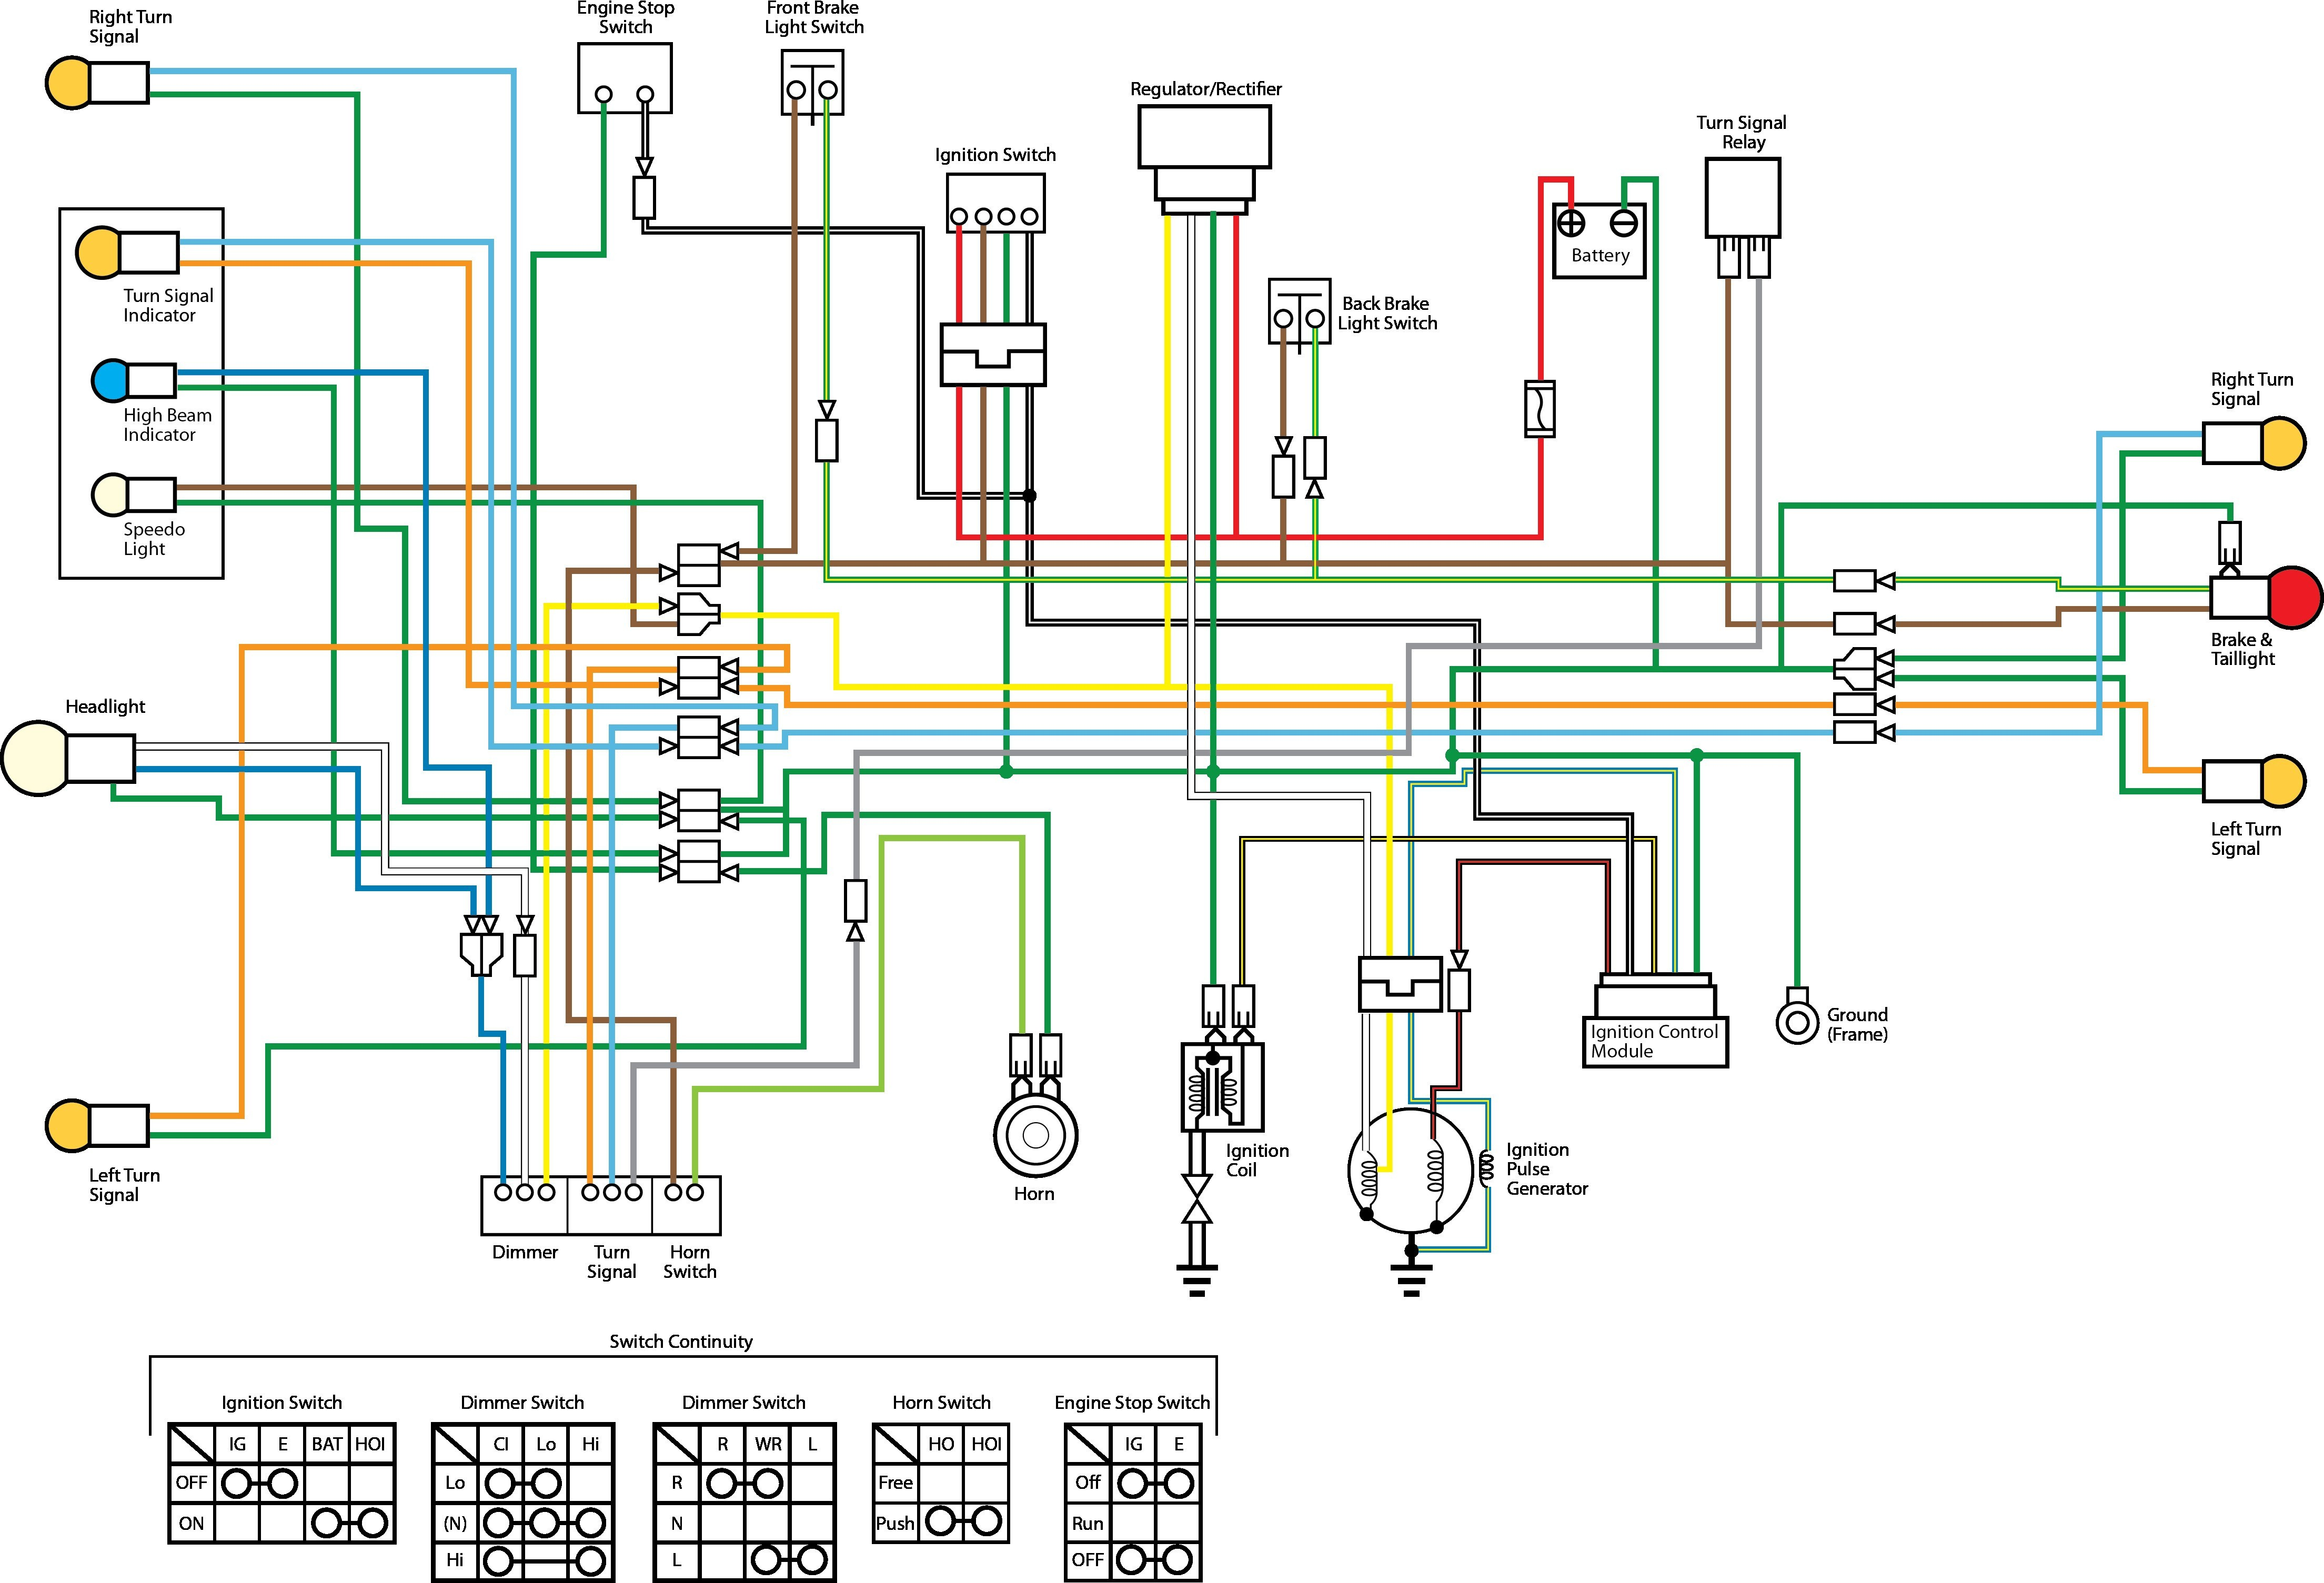 Chevy S10 Tail Light Wiring Diagram Wiring Diagram for 1986 Chevy S10 Wiring Diagram Datasource Of Chevy S10 Tail Light Wiring Diagram 92 S10 Tail Light Wiring Diagram Schema Wiring Diagram